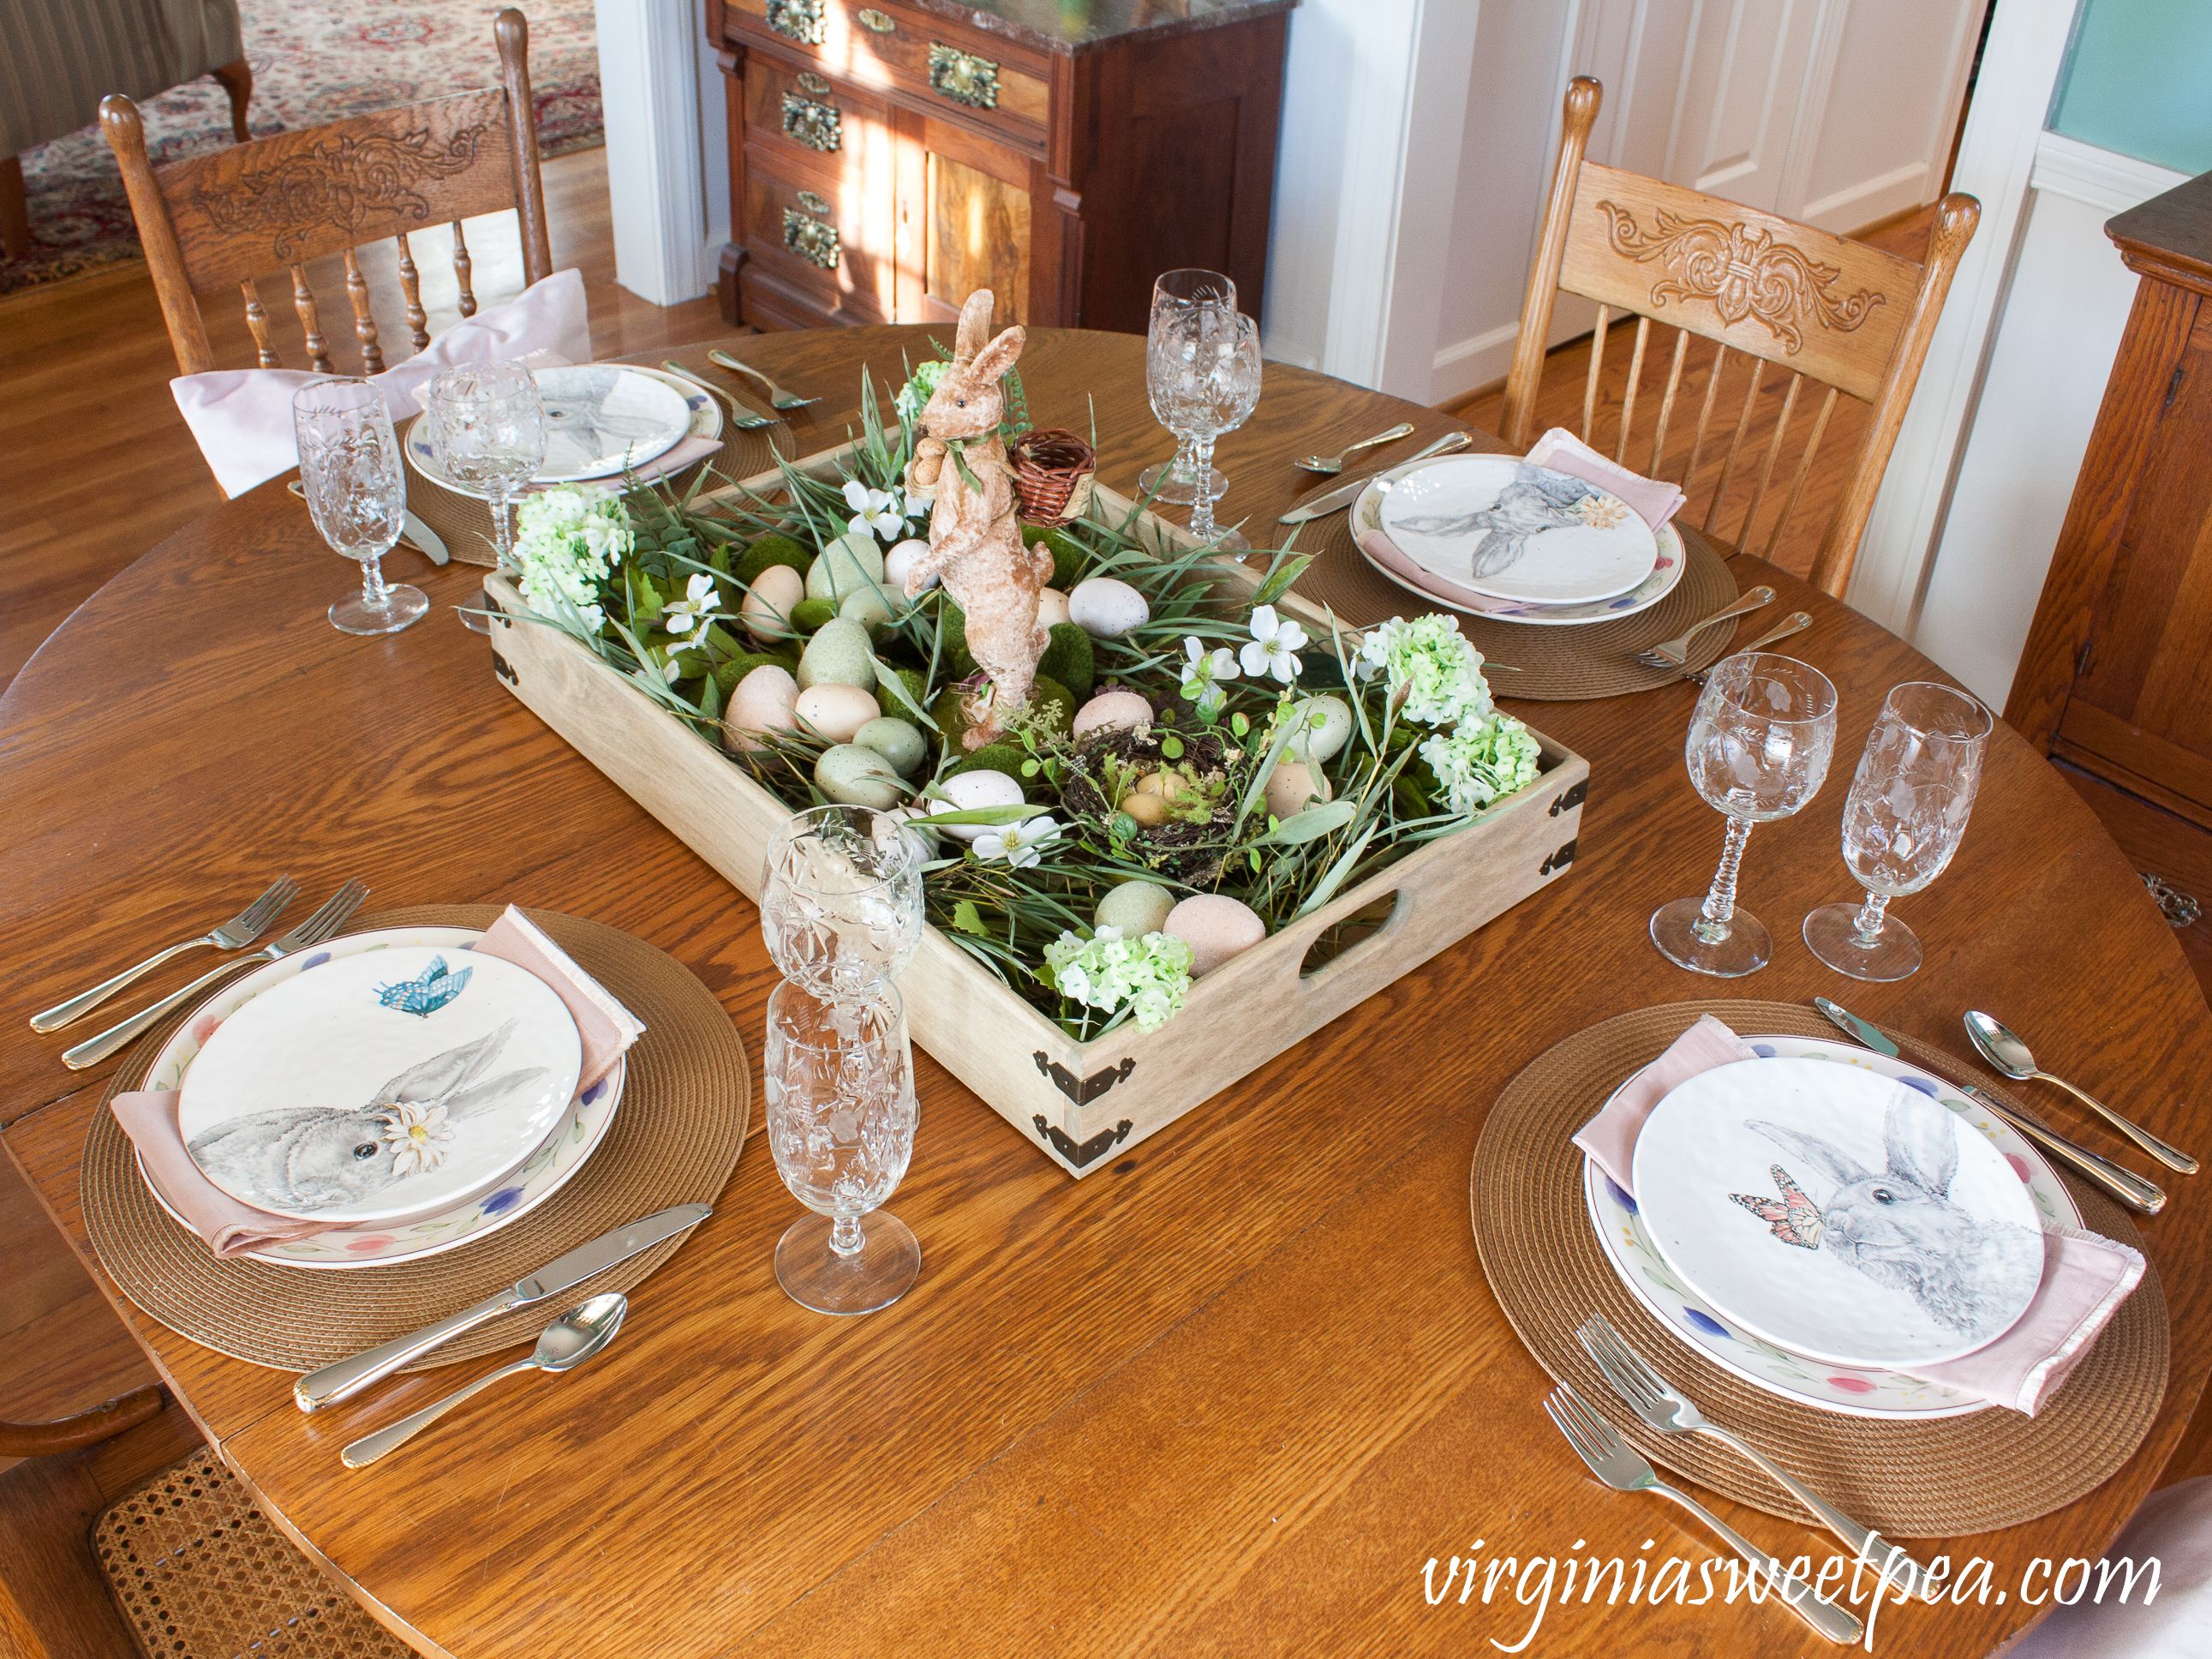 Easter Table with a Farmhouse Style Easter Centerpiece #easter #eastercenterpiece #eastertablescape #farmhouse #farmhousecenterpiece #farmhousetable #eastertable